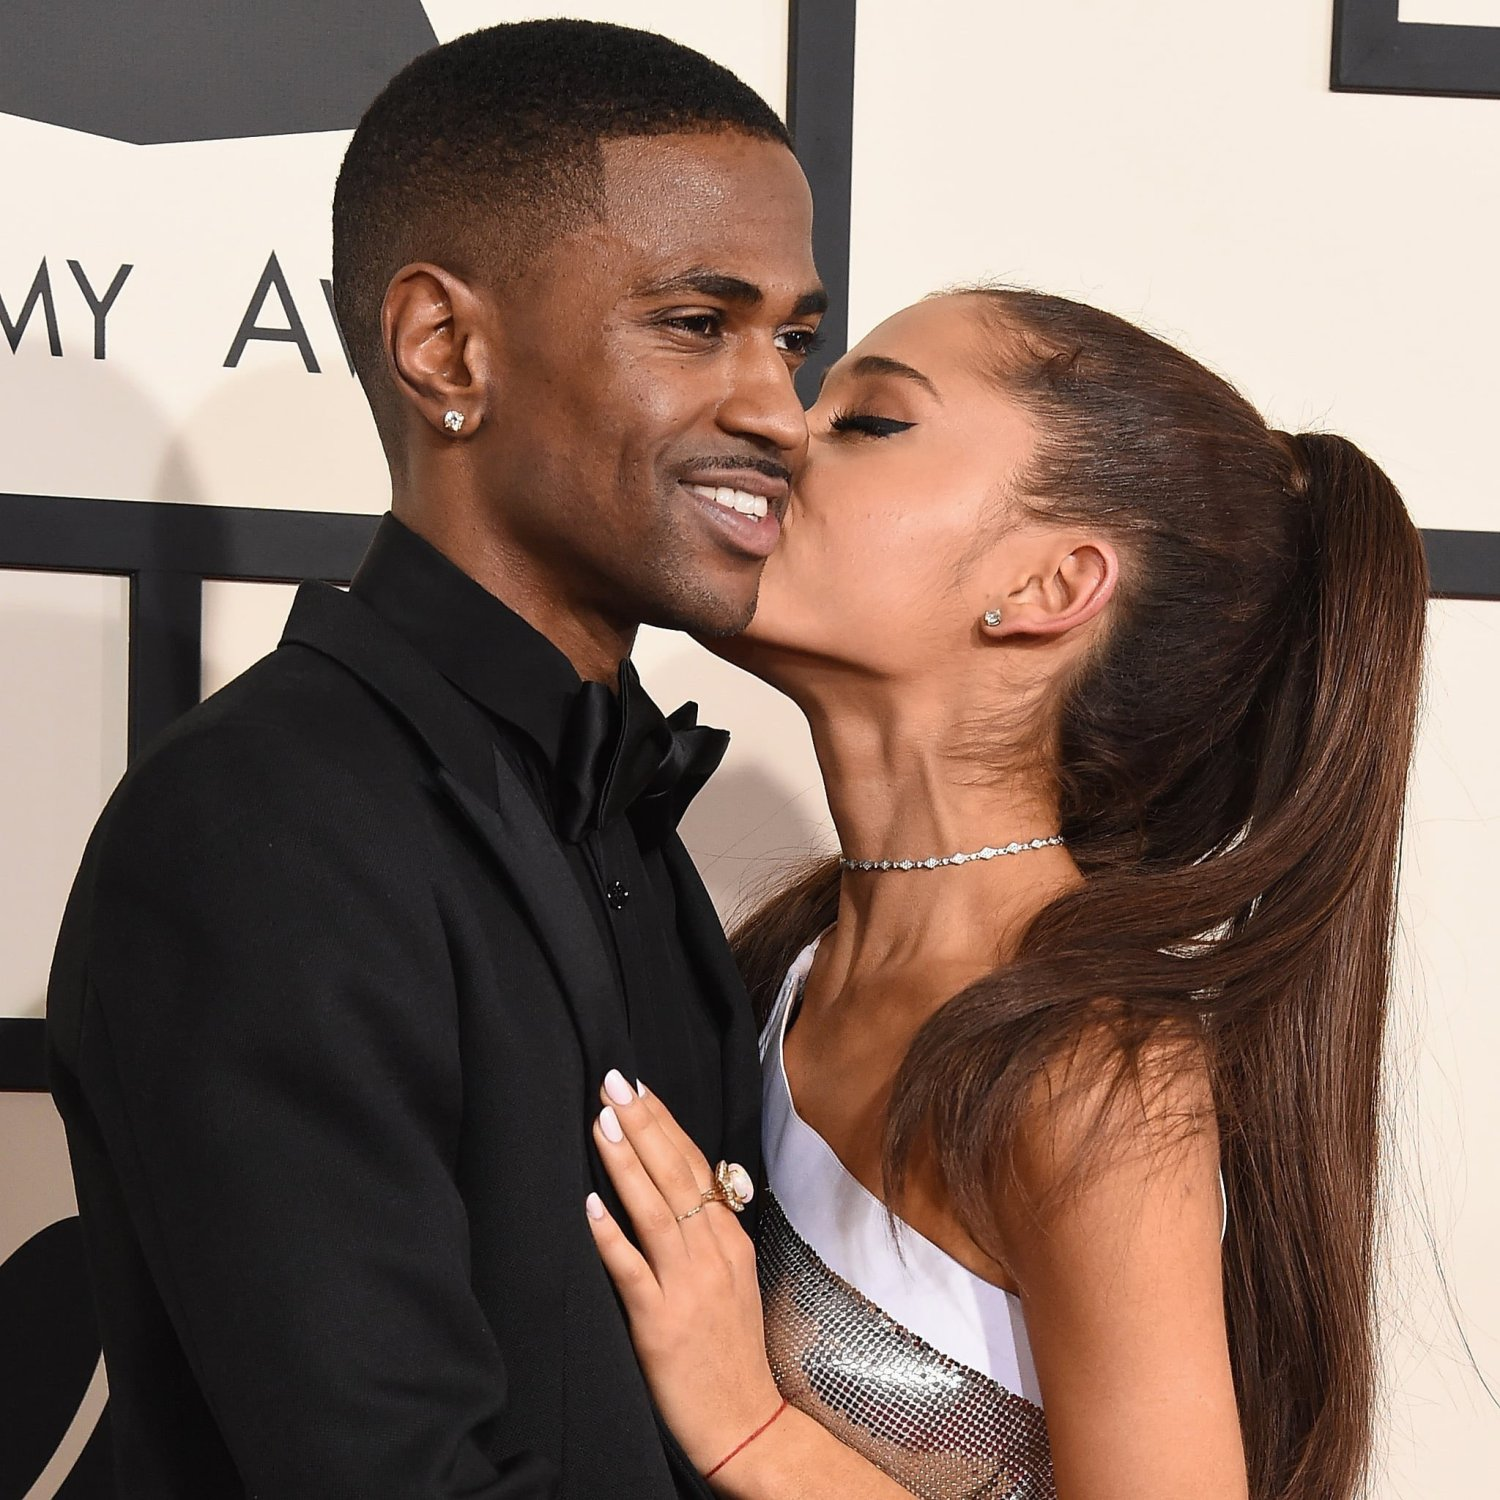 7 Men Who Have Dated Ariana Grande